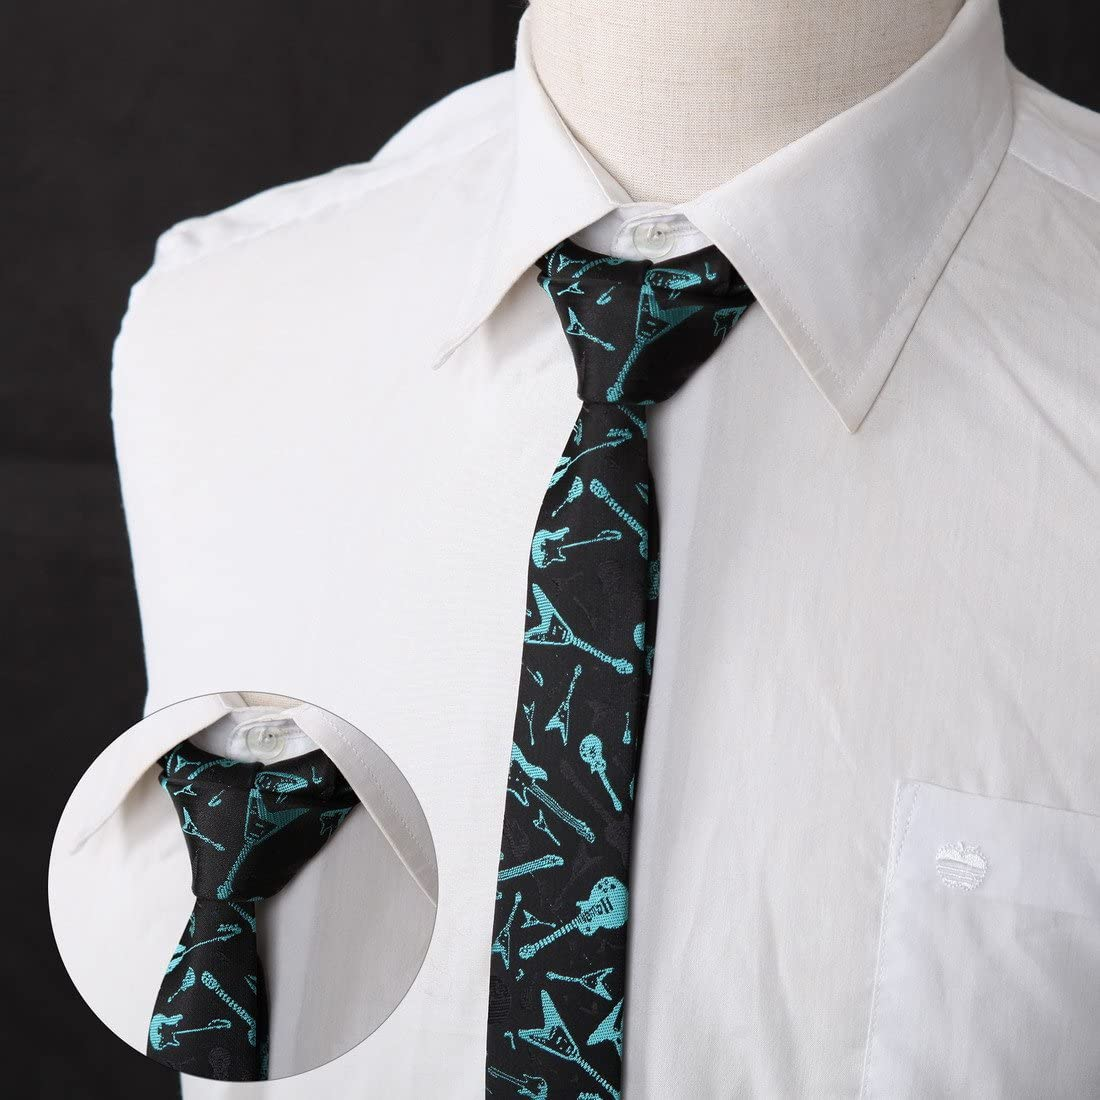 DANF0033 Various Colors Polyester Slim Ties Perfect Design Skinny Ties 5 Styles Available Suppliers For Working By Dan Smith